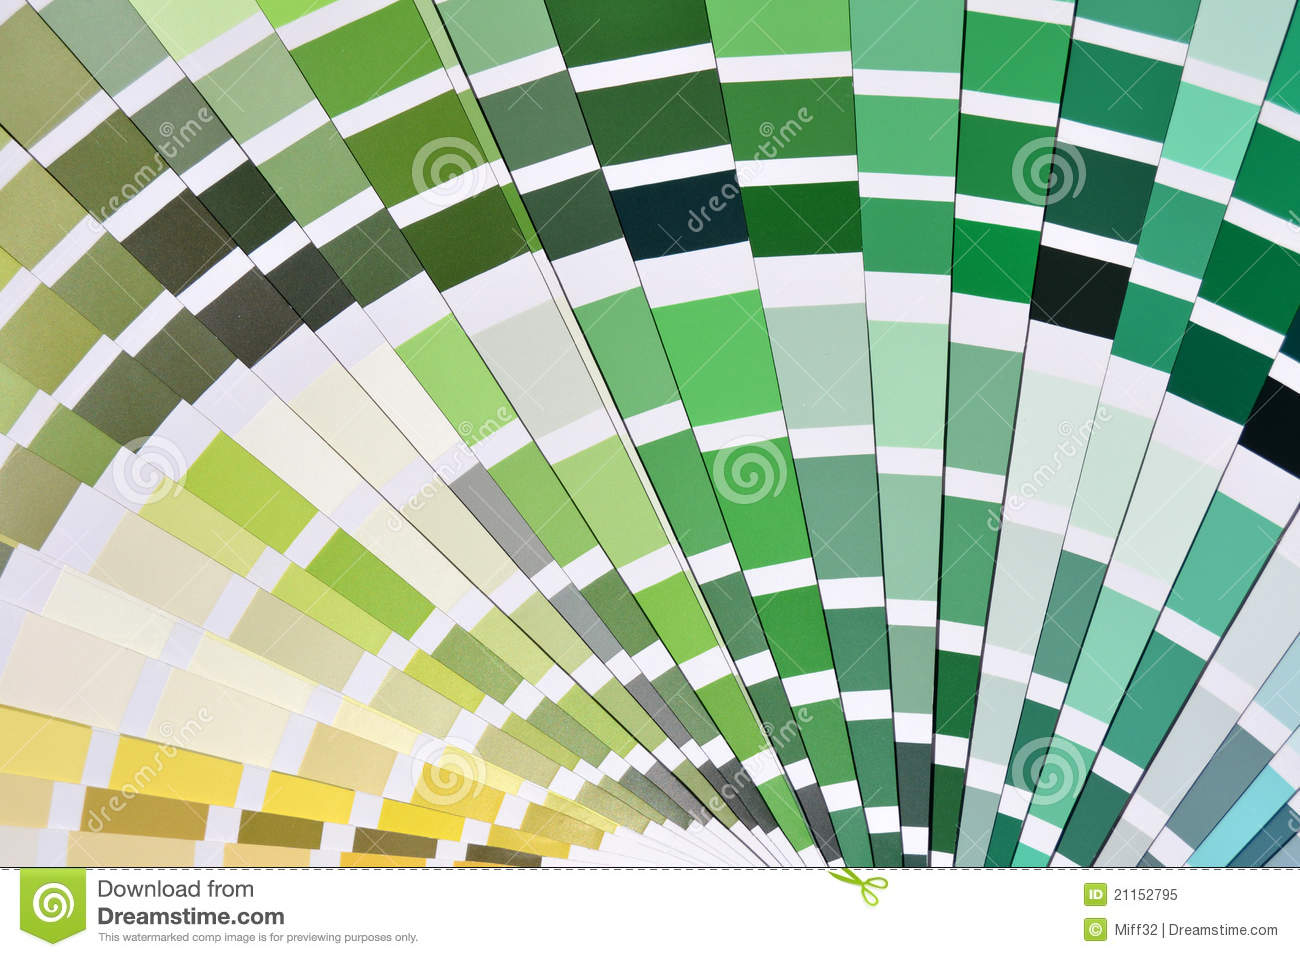 Pantone Grün Pantone Stock Illustrations – 6,048 Pantone Stock Illustrations, Vectors & Clipart - Dreamstime